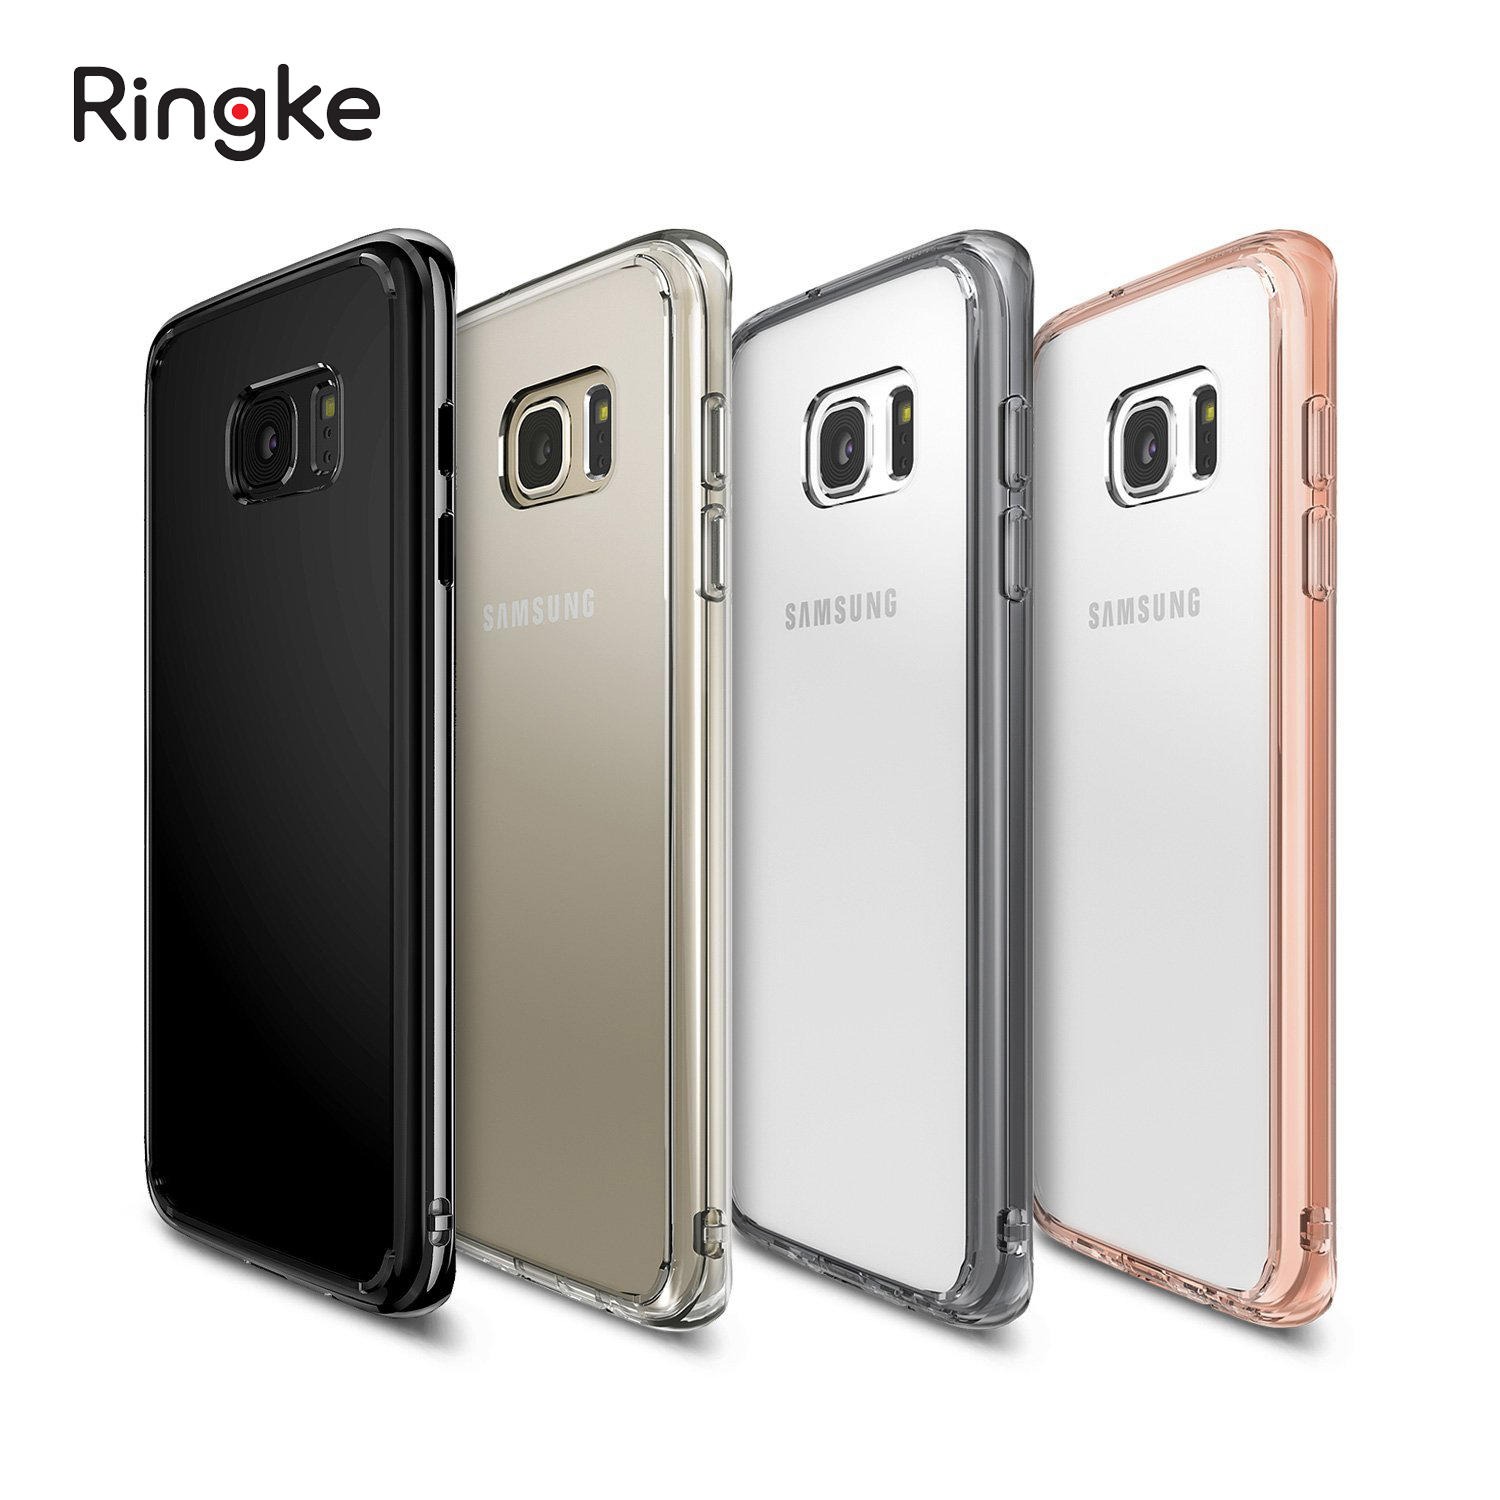 Ringke Fusion Case For Galaxy S7 Edge Hard Back Panel + Soft TPU Frame MIL-STD Cases for Samsung Galaxy S7 EdgeRingke Fusion Case For Galaxy S7 Edge Hard Back Panel + Soft TPU Frame MIL-STD Cases for Samsung Galaxy S7 Edge